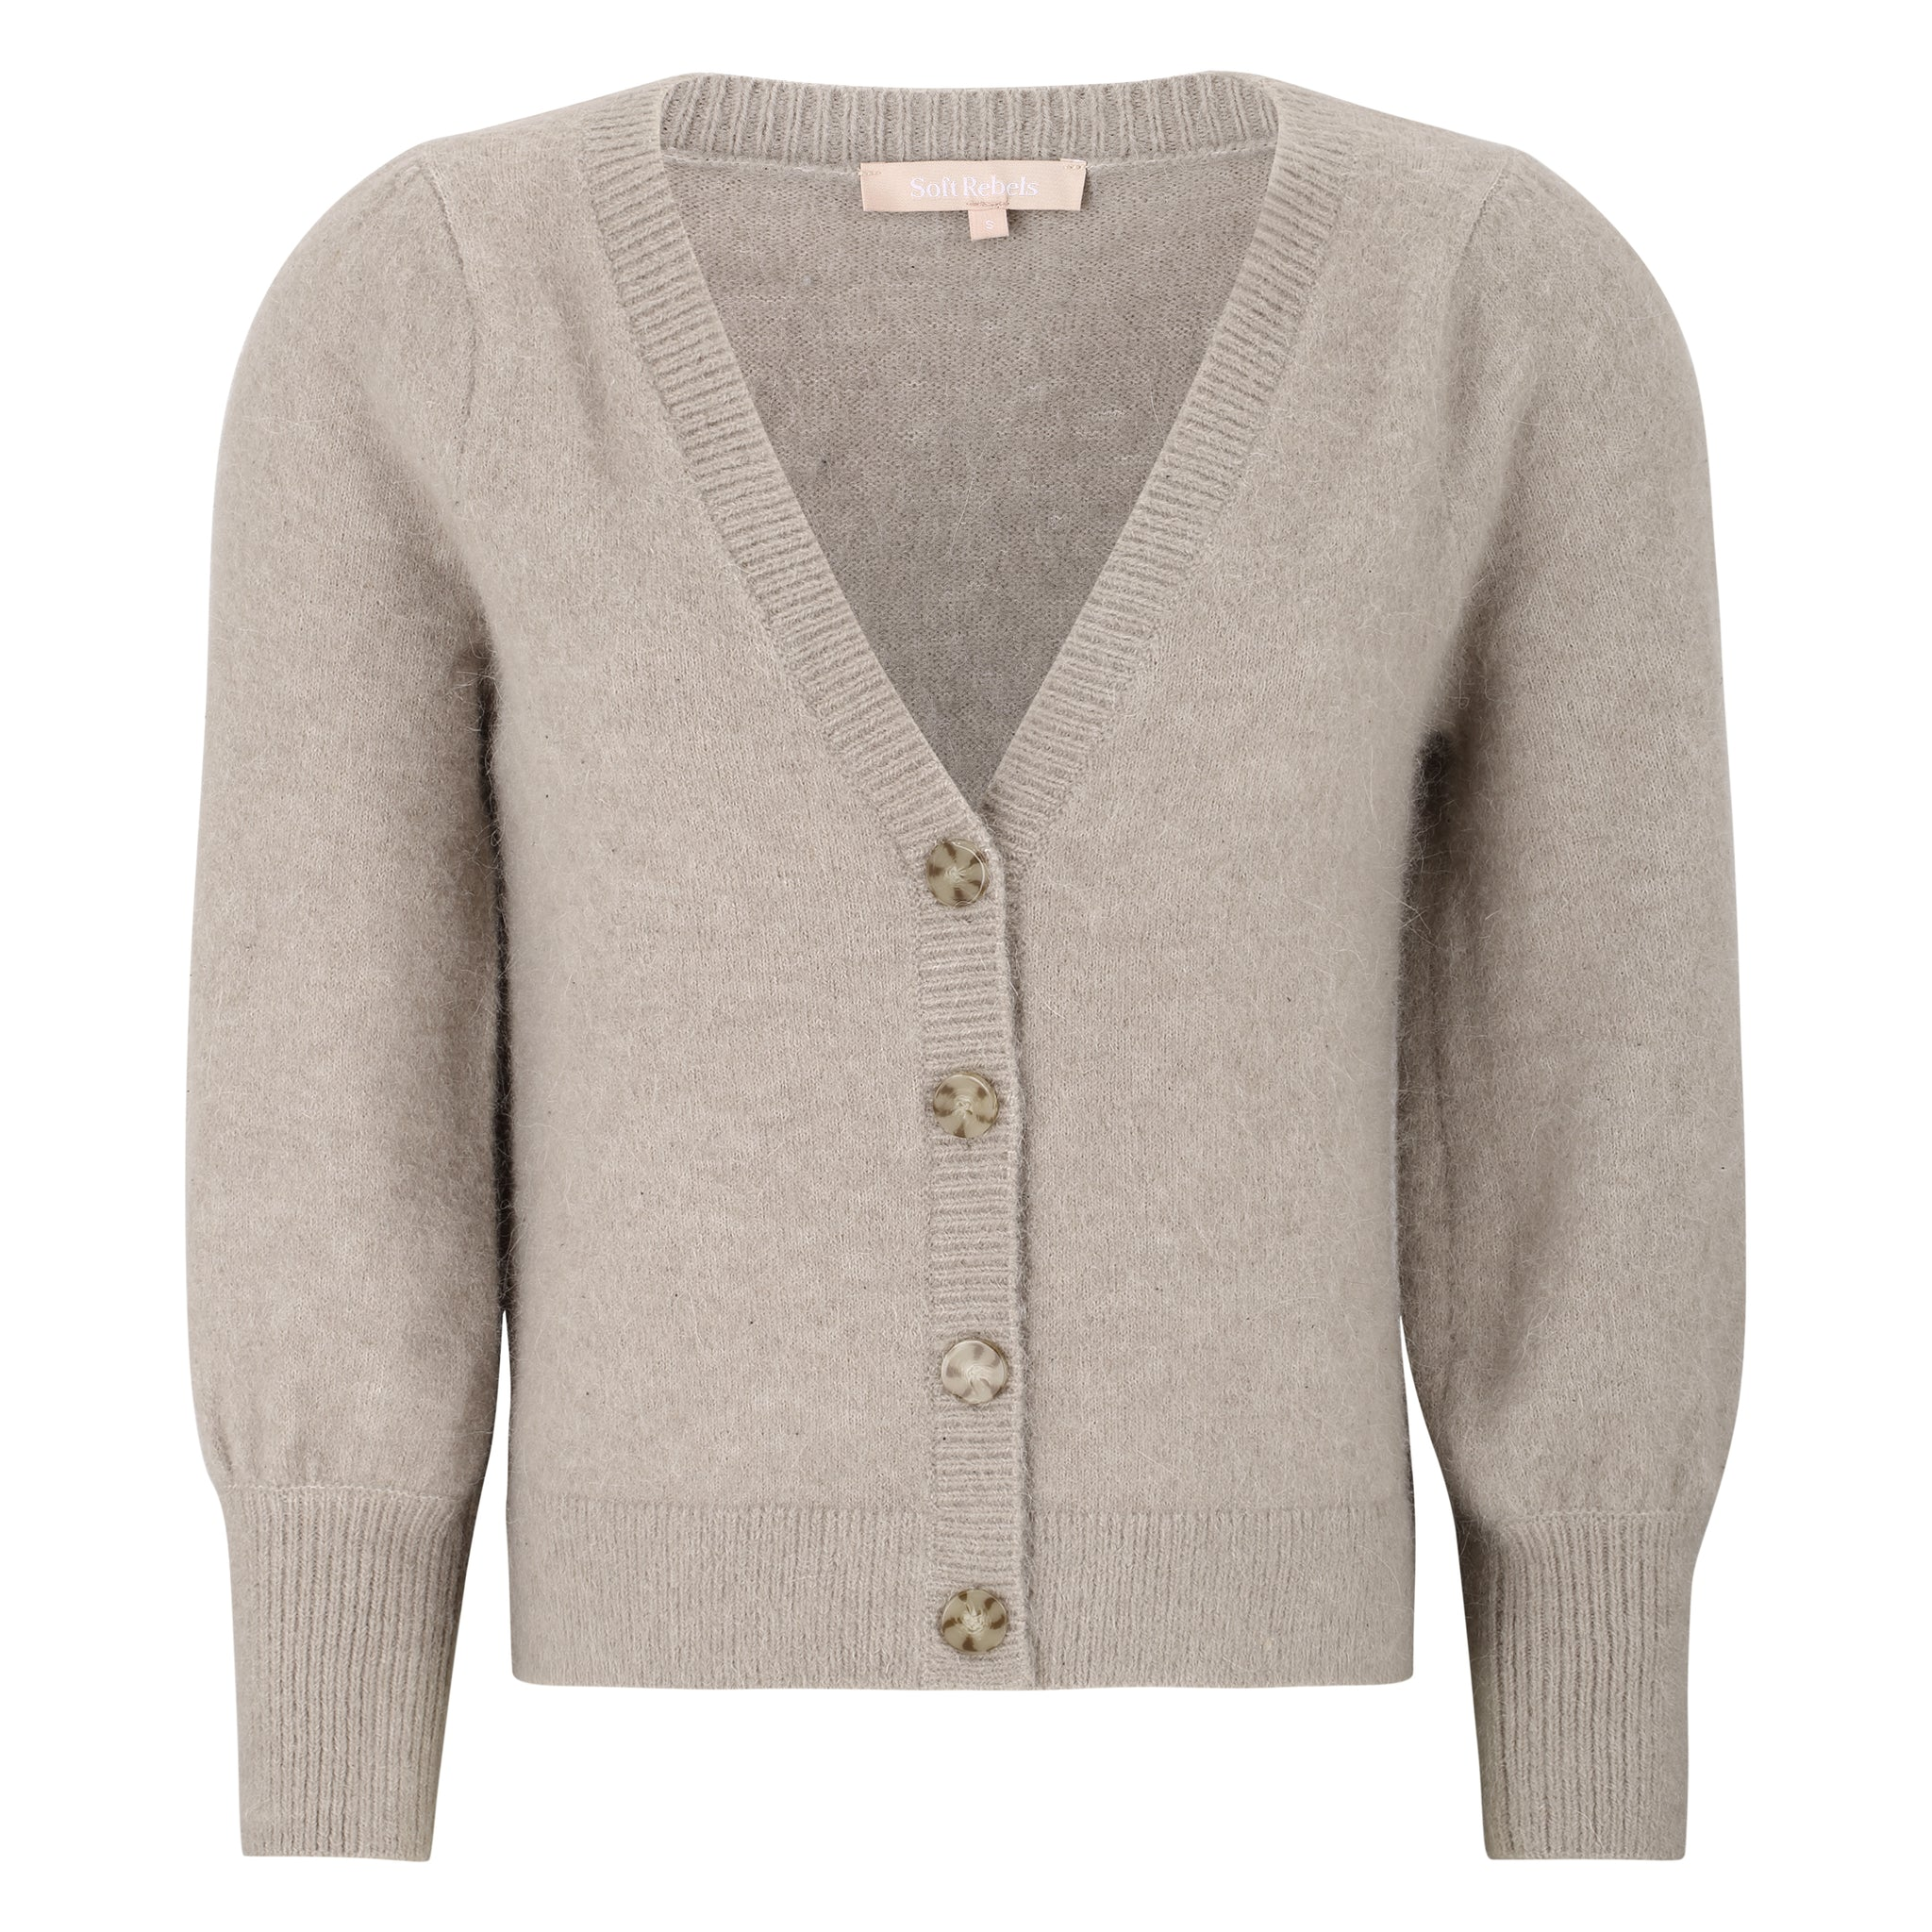 Soft Rebels Liva 3/4 Cardigan, grau / braun